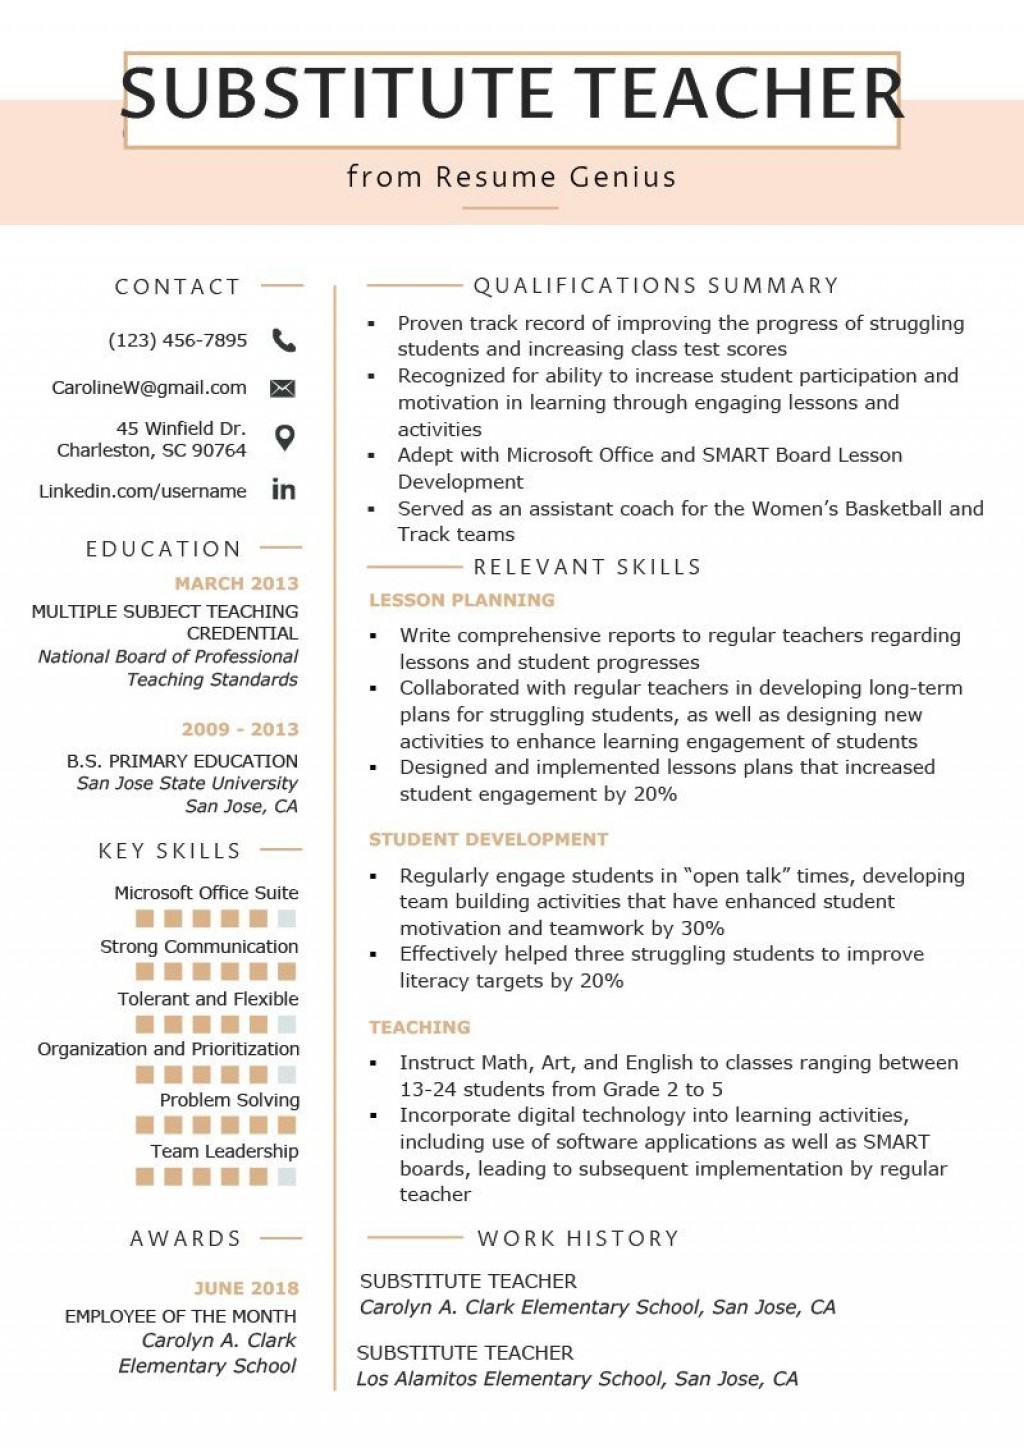 002 Stunning Resume Template For Teaching High Def  Example Assistant Cv Uk JobLarge